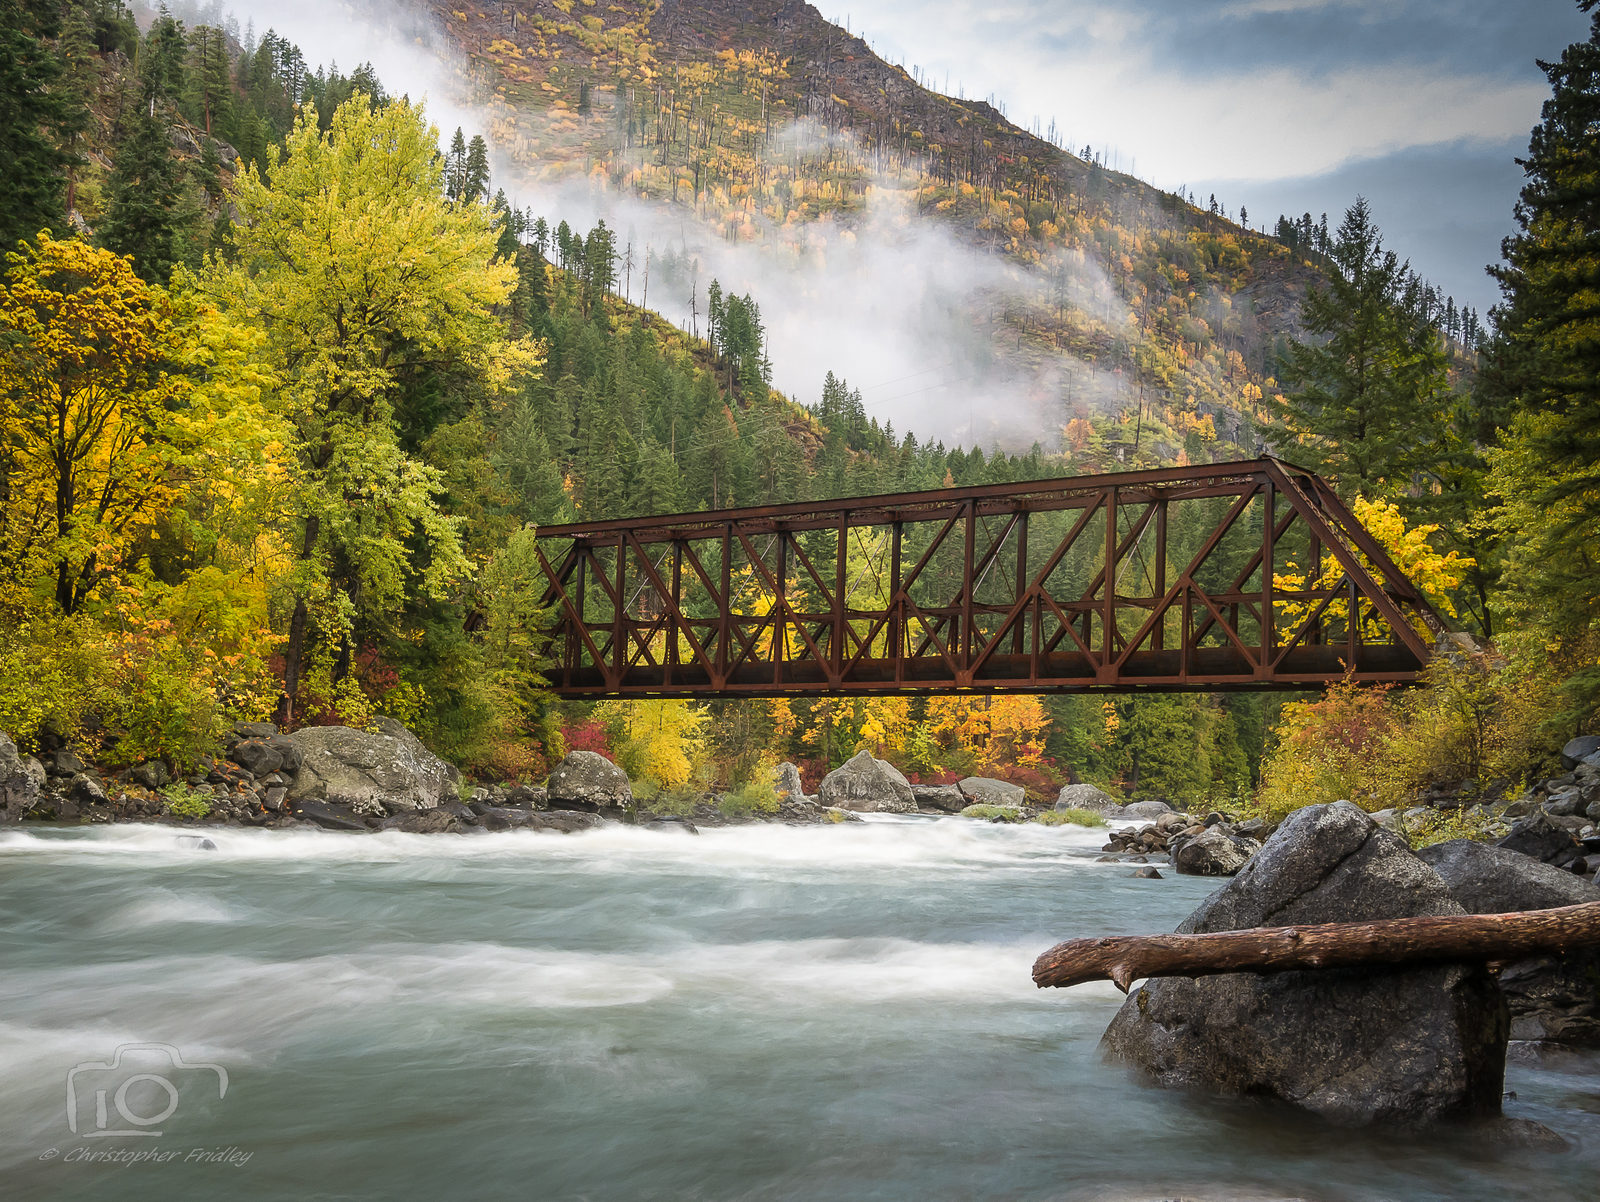 Tumwater Canyon Pipeline Bridge